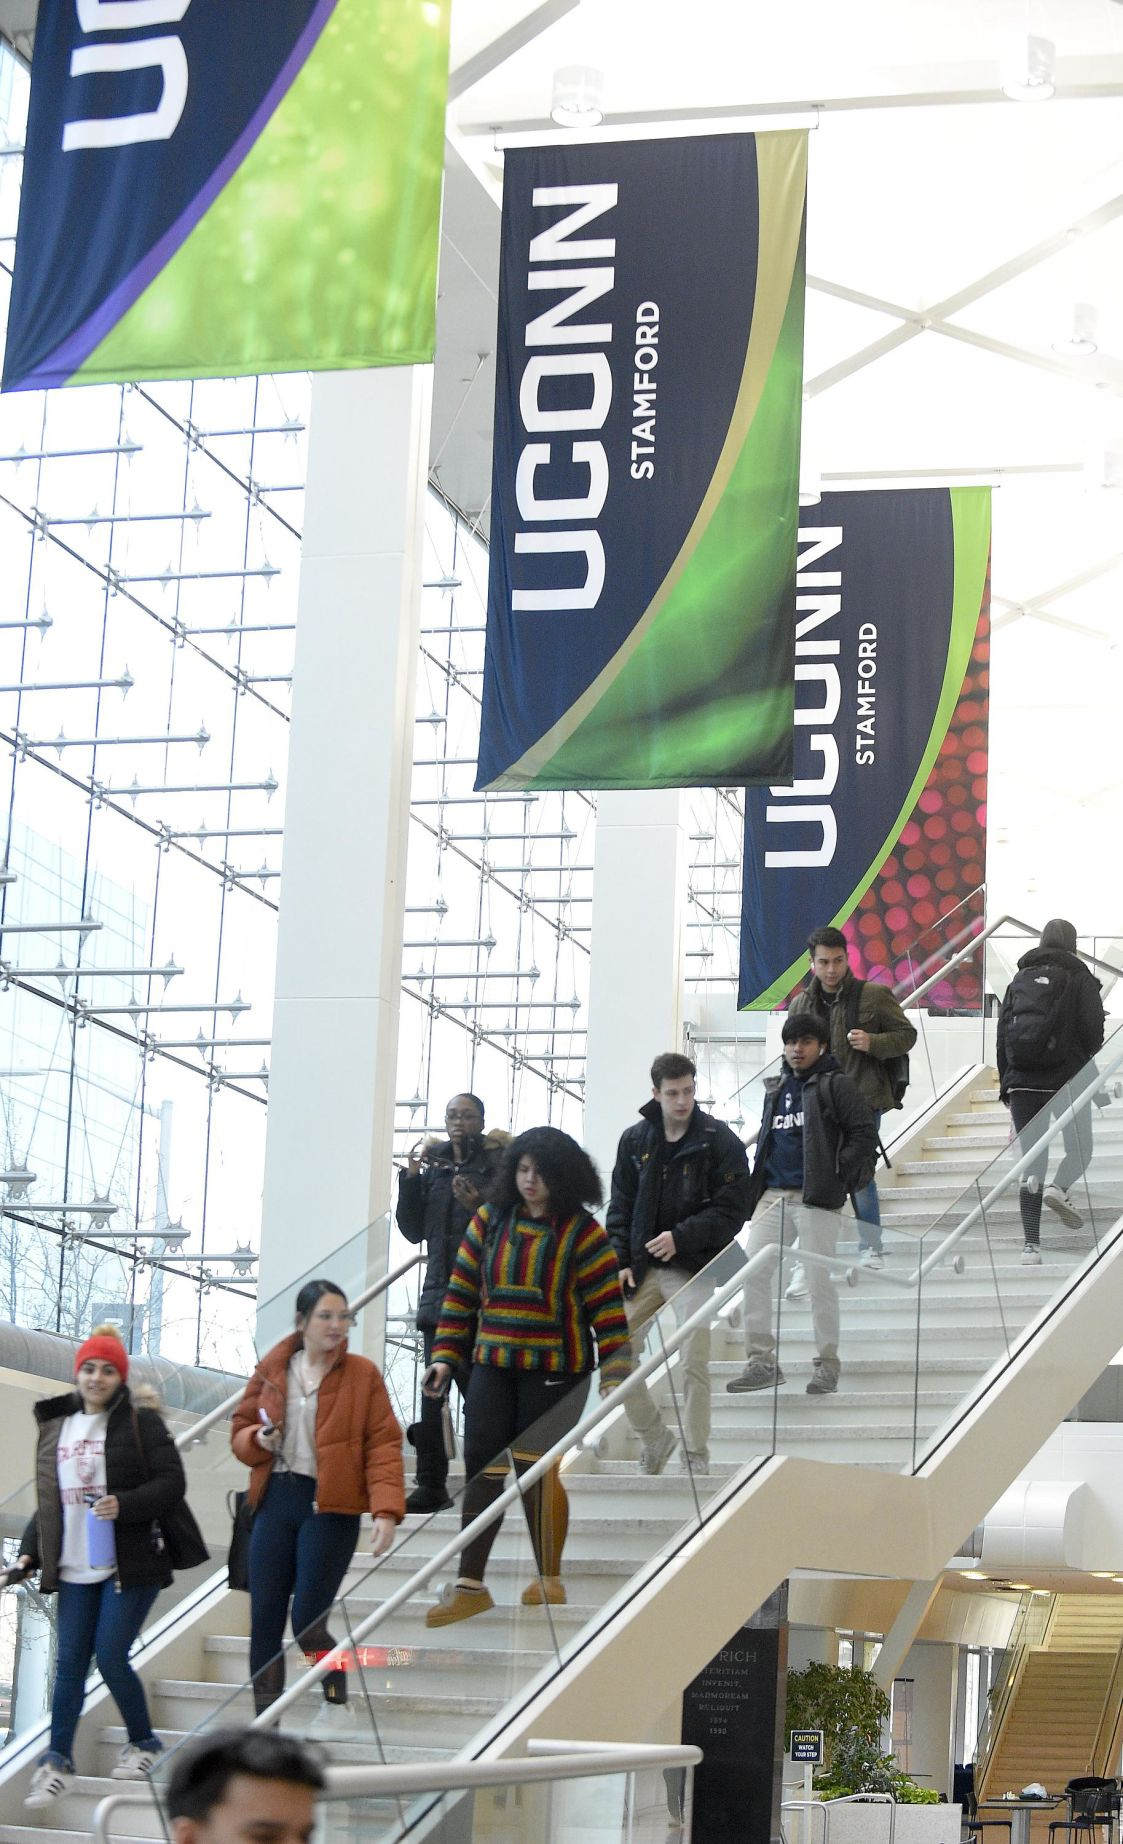 Classes could start on campus by Aug. 31 under UConn reopen plan